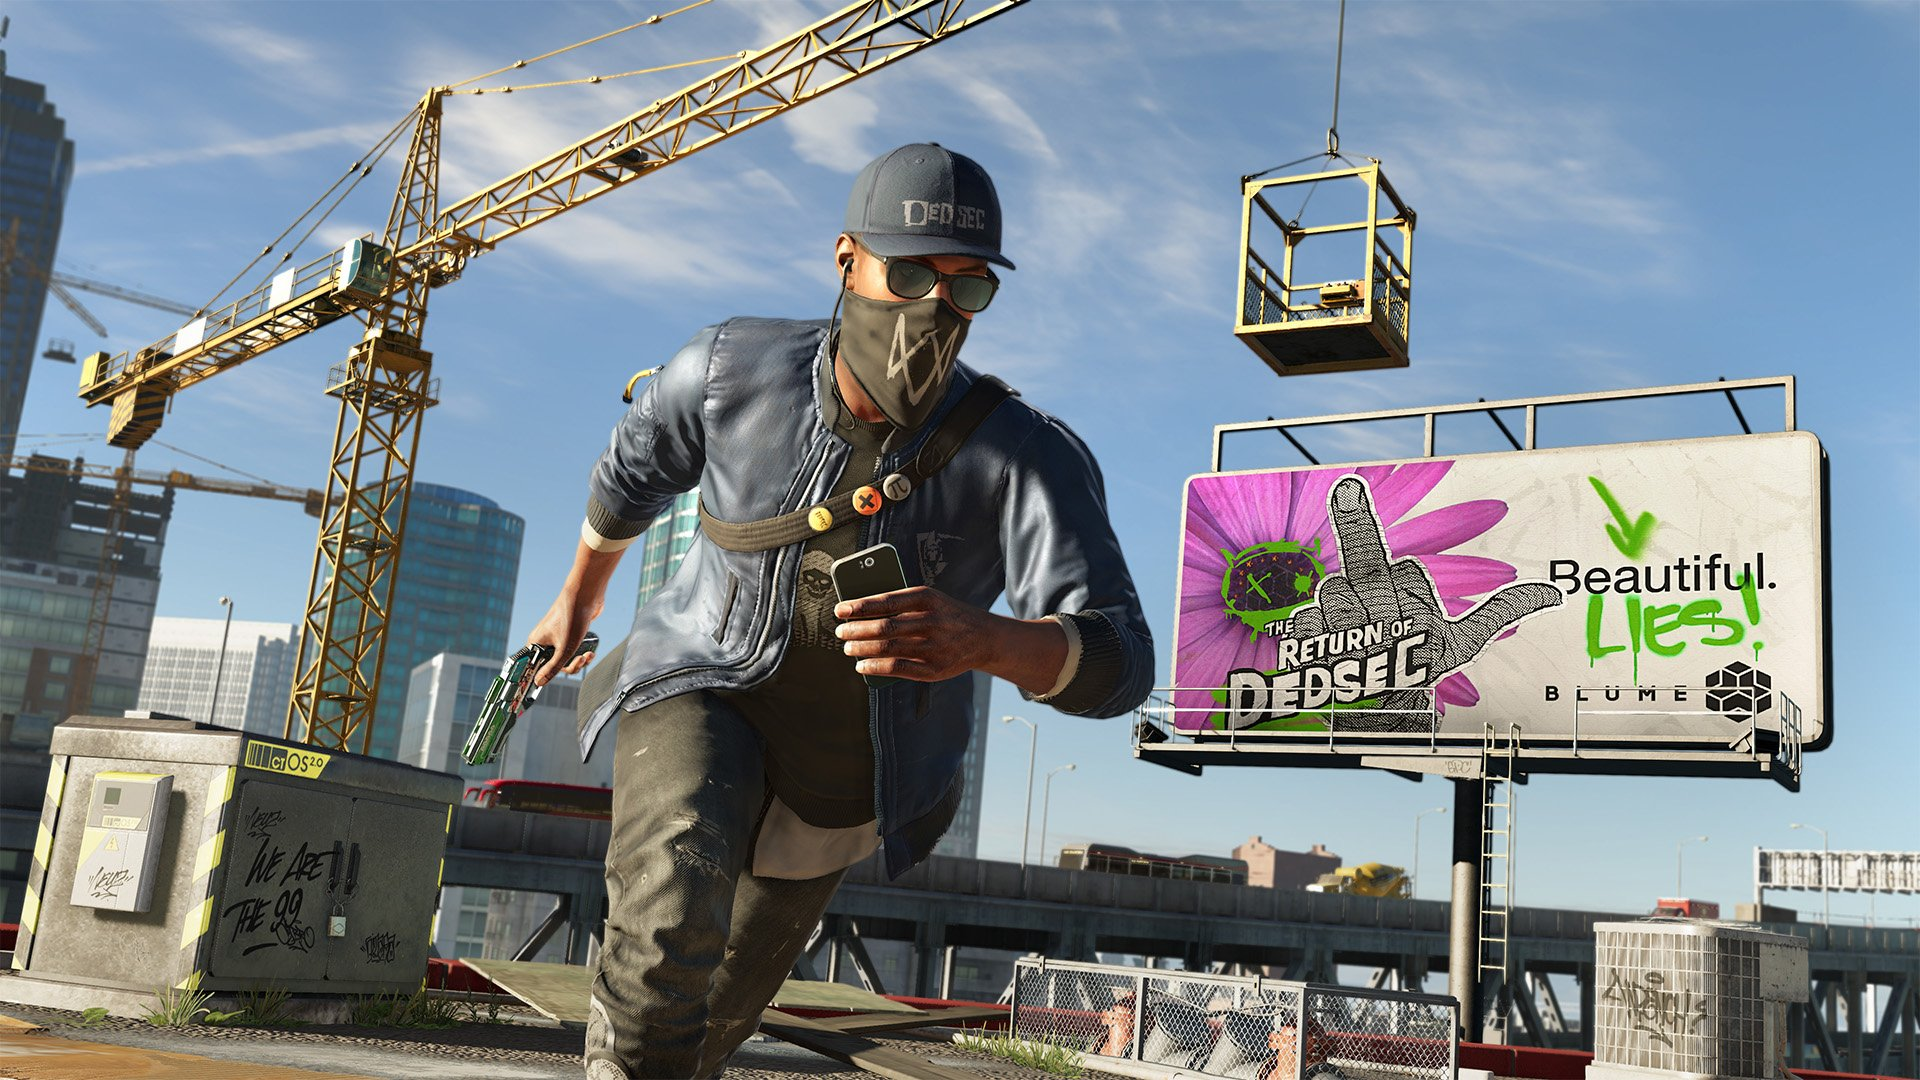 Watch Dogs 2 is free on the Epic Games Store until September 24